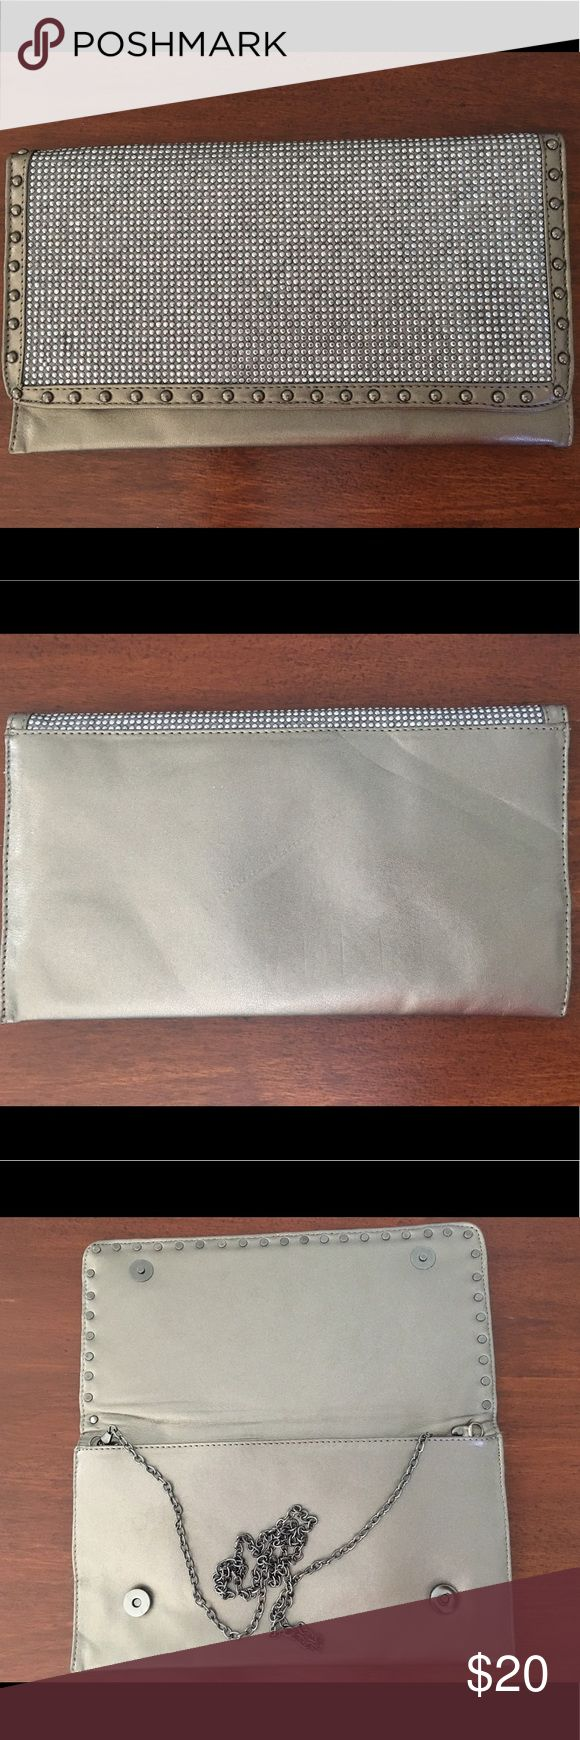 Sparkly clutch with chain strap. Sparkling silver clutch with metal chain strap. Magnetic closure. mms Bags Clutches & Wristlets